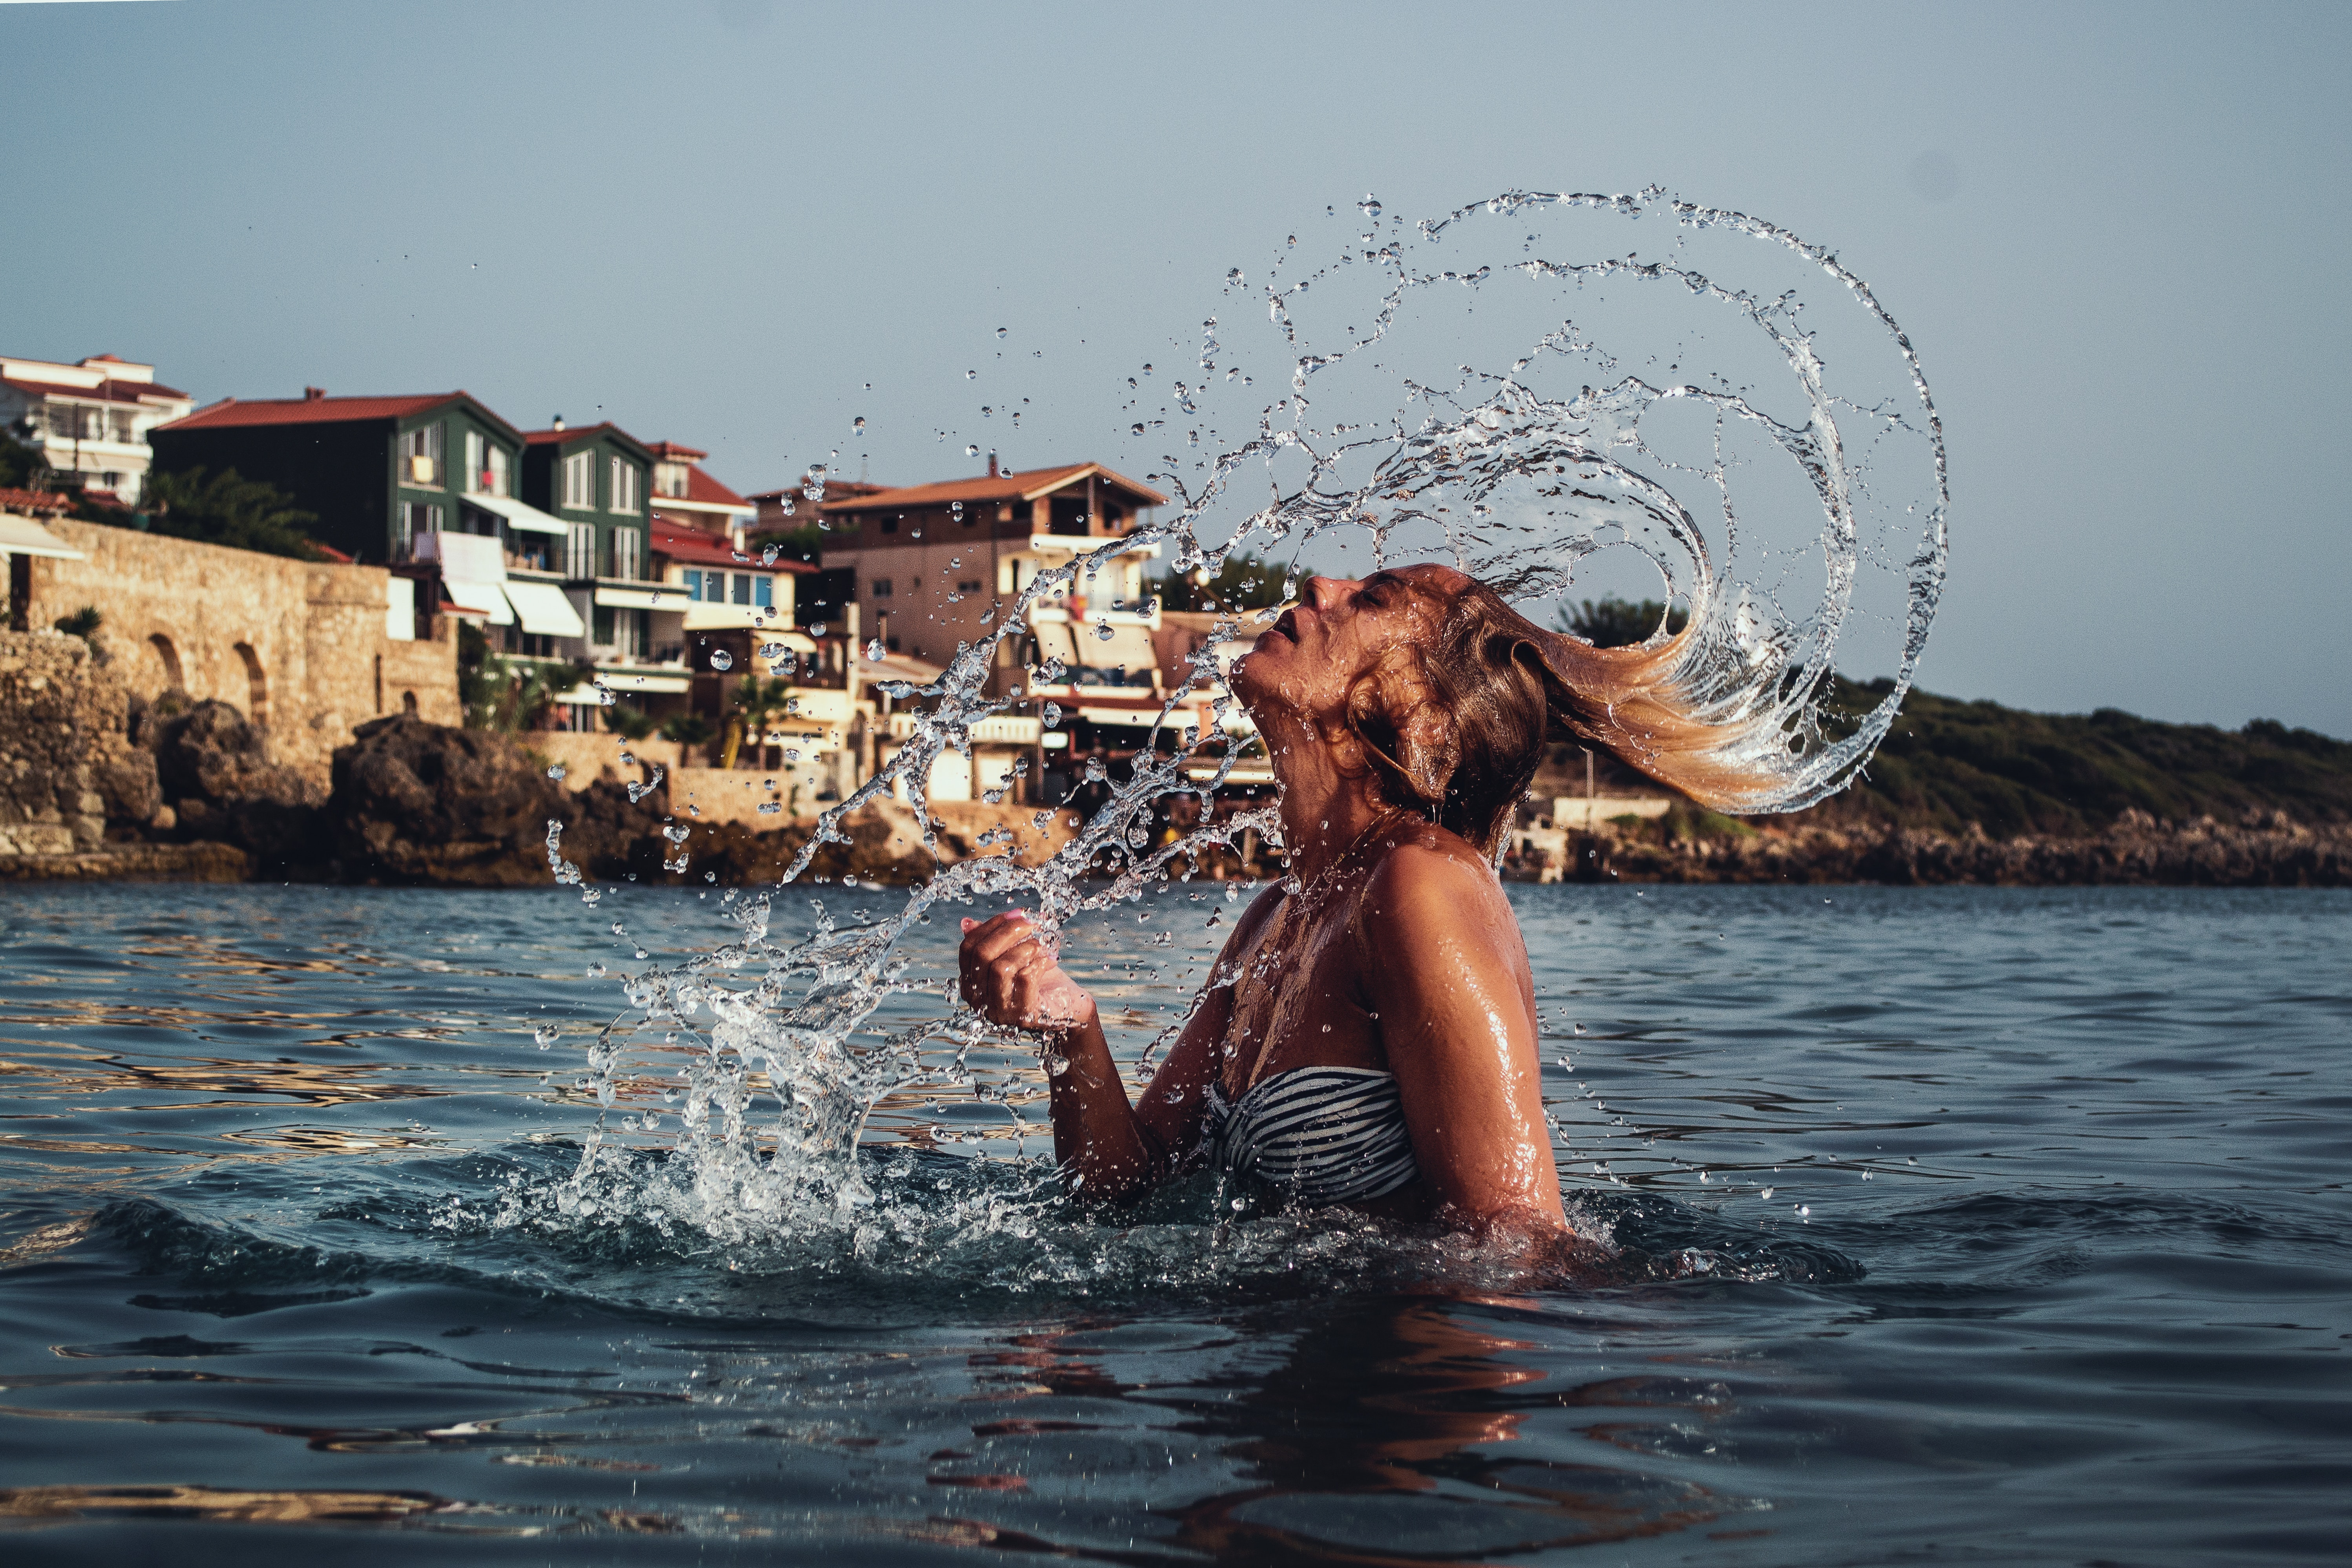 Time-lapse Photography of Woman Playing on Water With Her Hair, Splash, Splashing, Summer, Sexy, HQ Photo